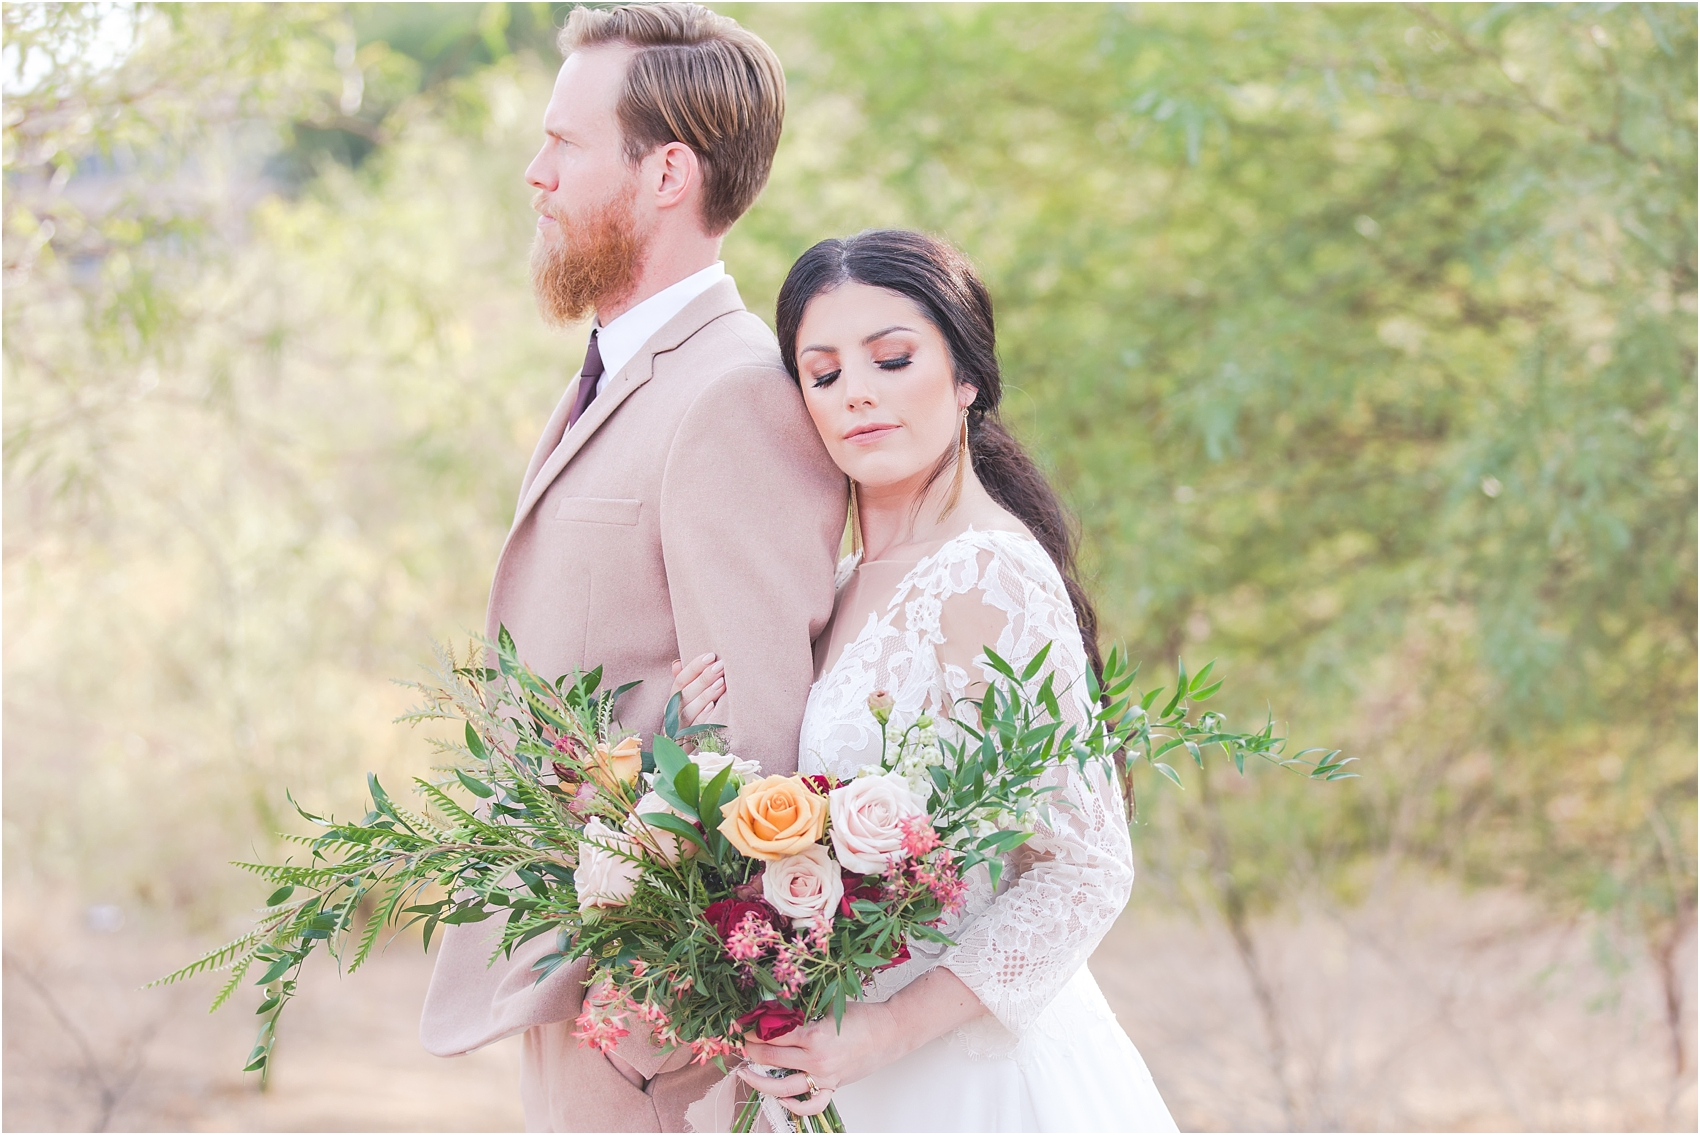 intimate-and-romantic-desert-wedding-photos-at-phoenix-marriott-tempe-at-the-buttes-in-tempe-arizona-by-courtney-carolyn-photography_0036.jpg